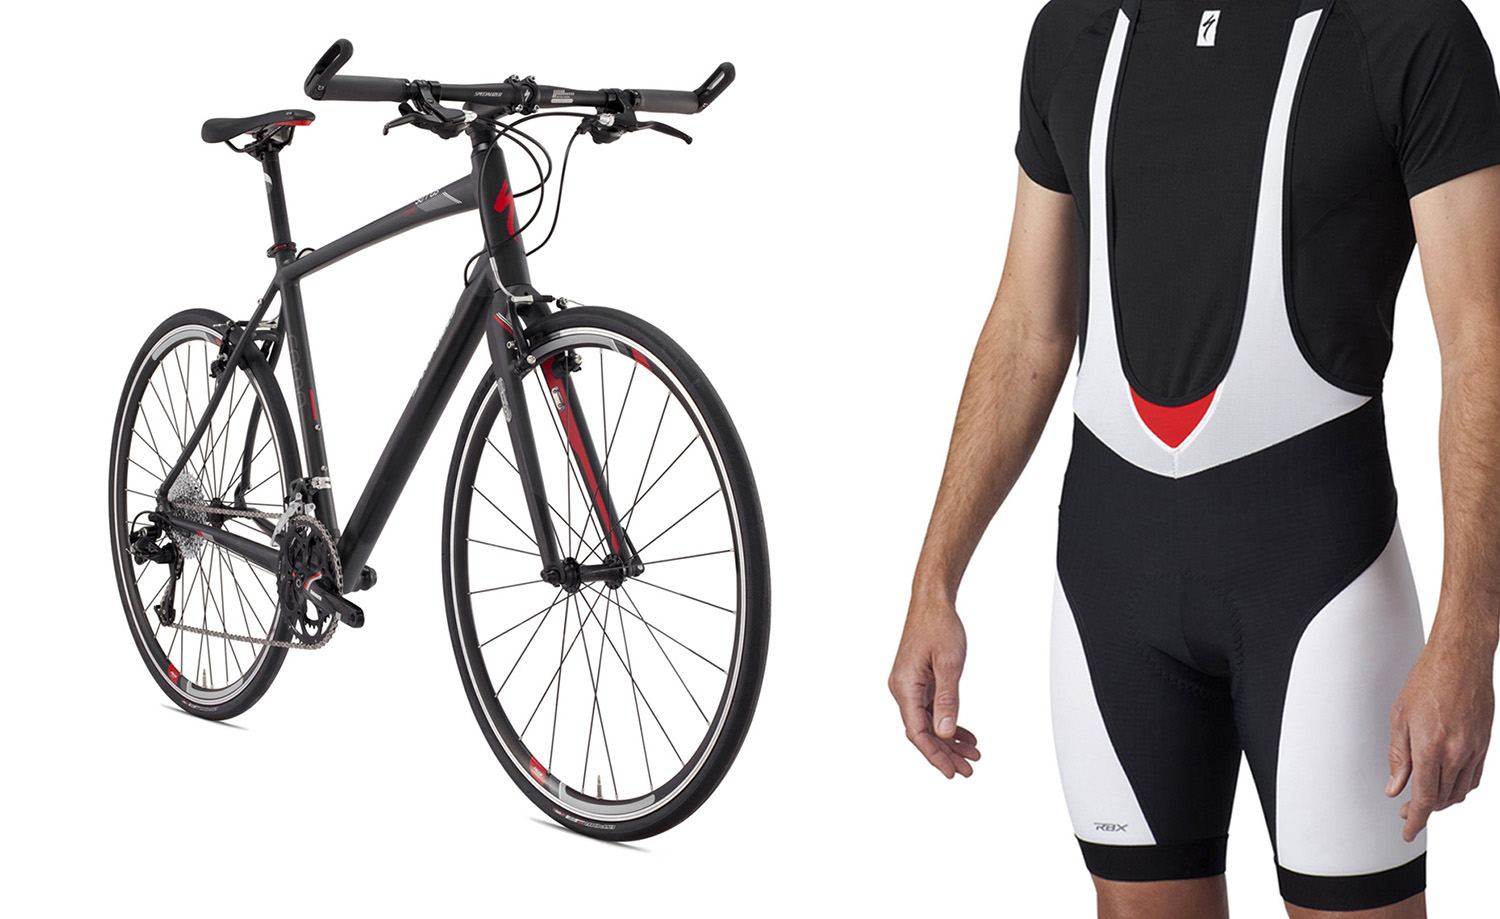 Specialized Bike and Apparel